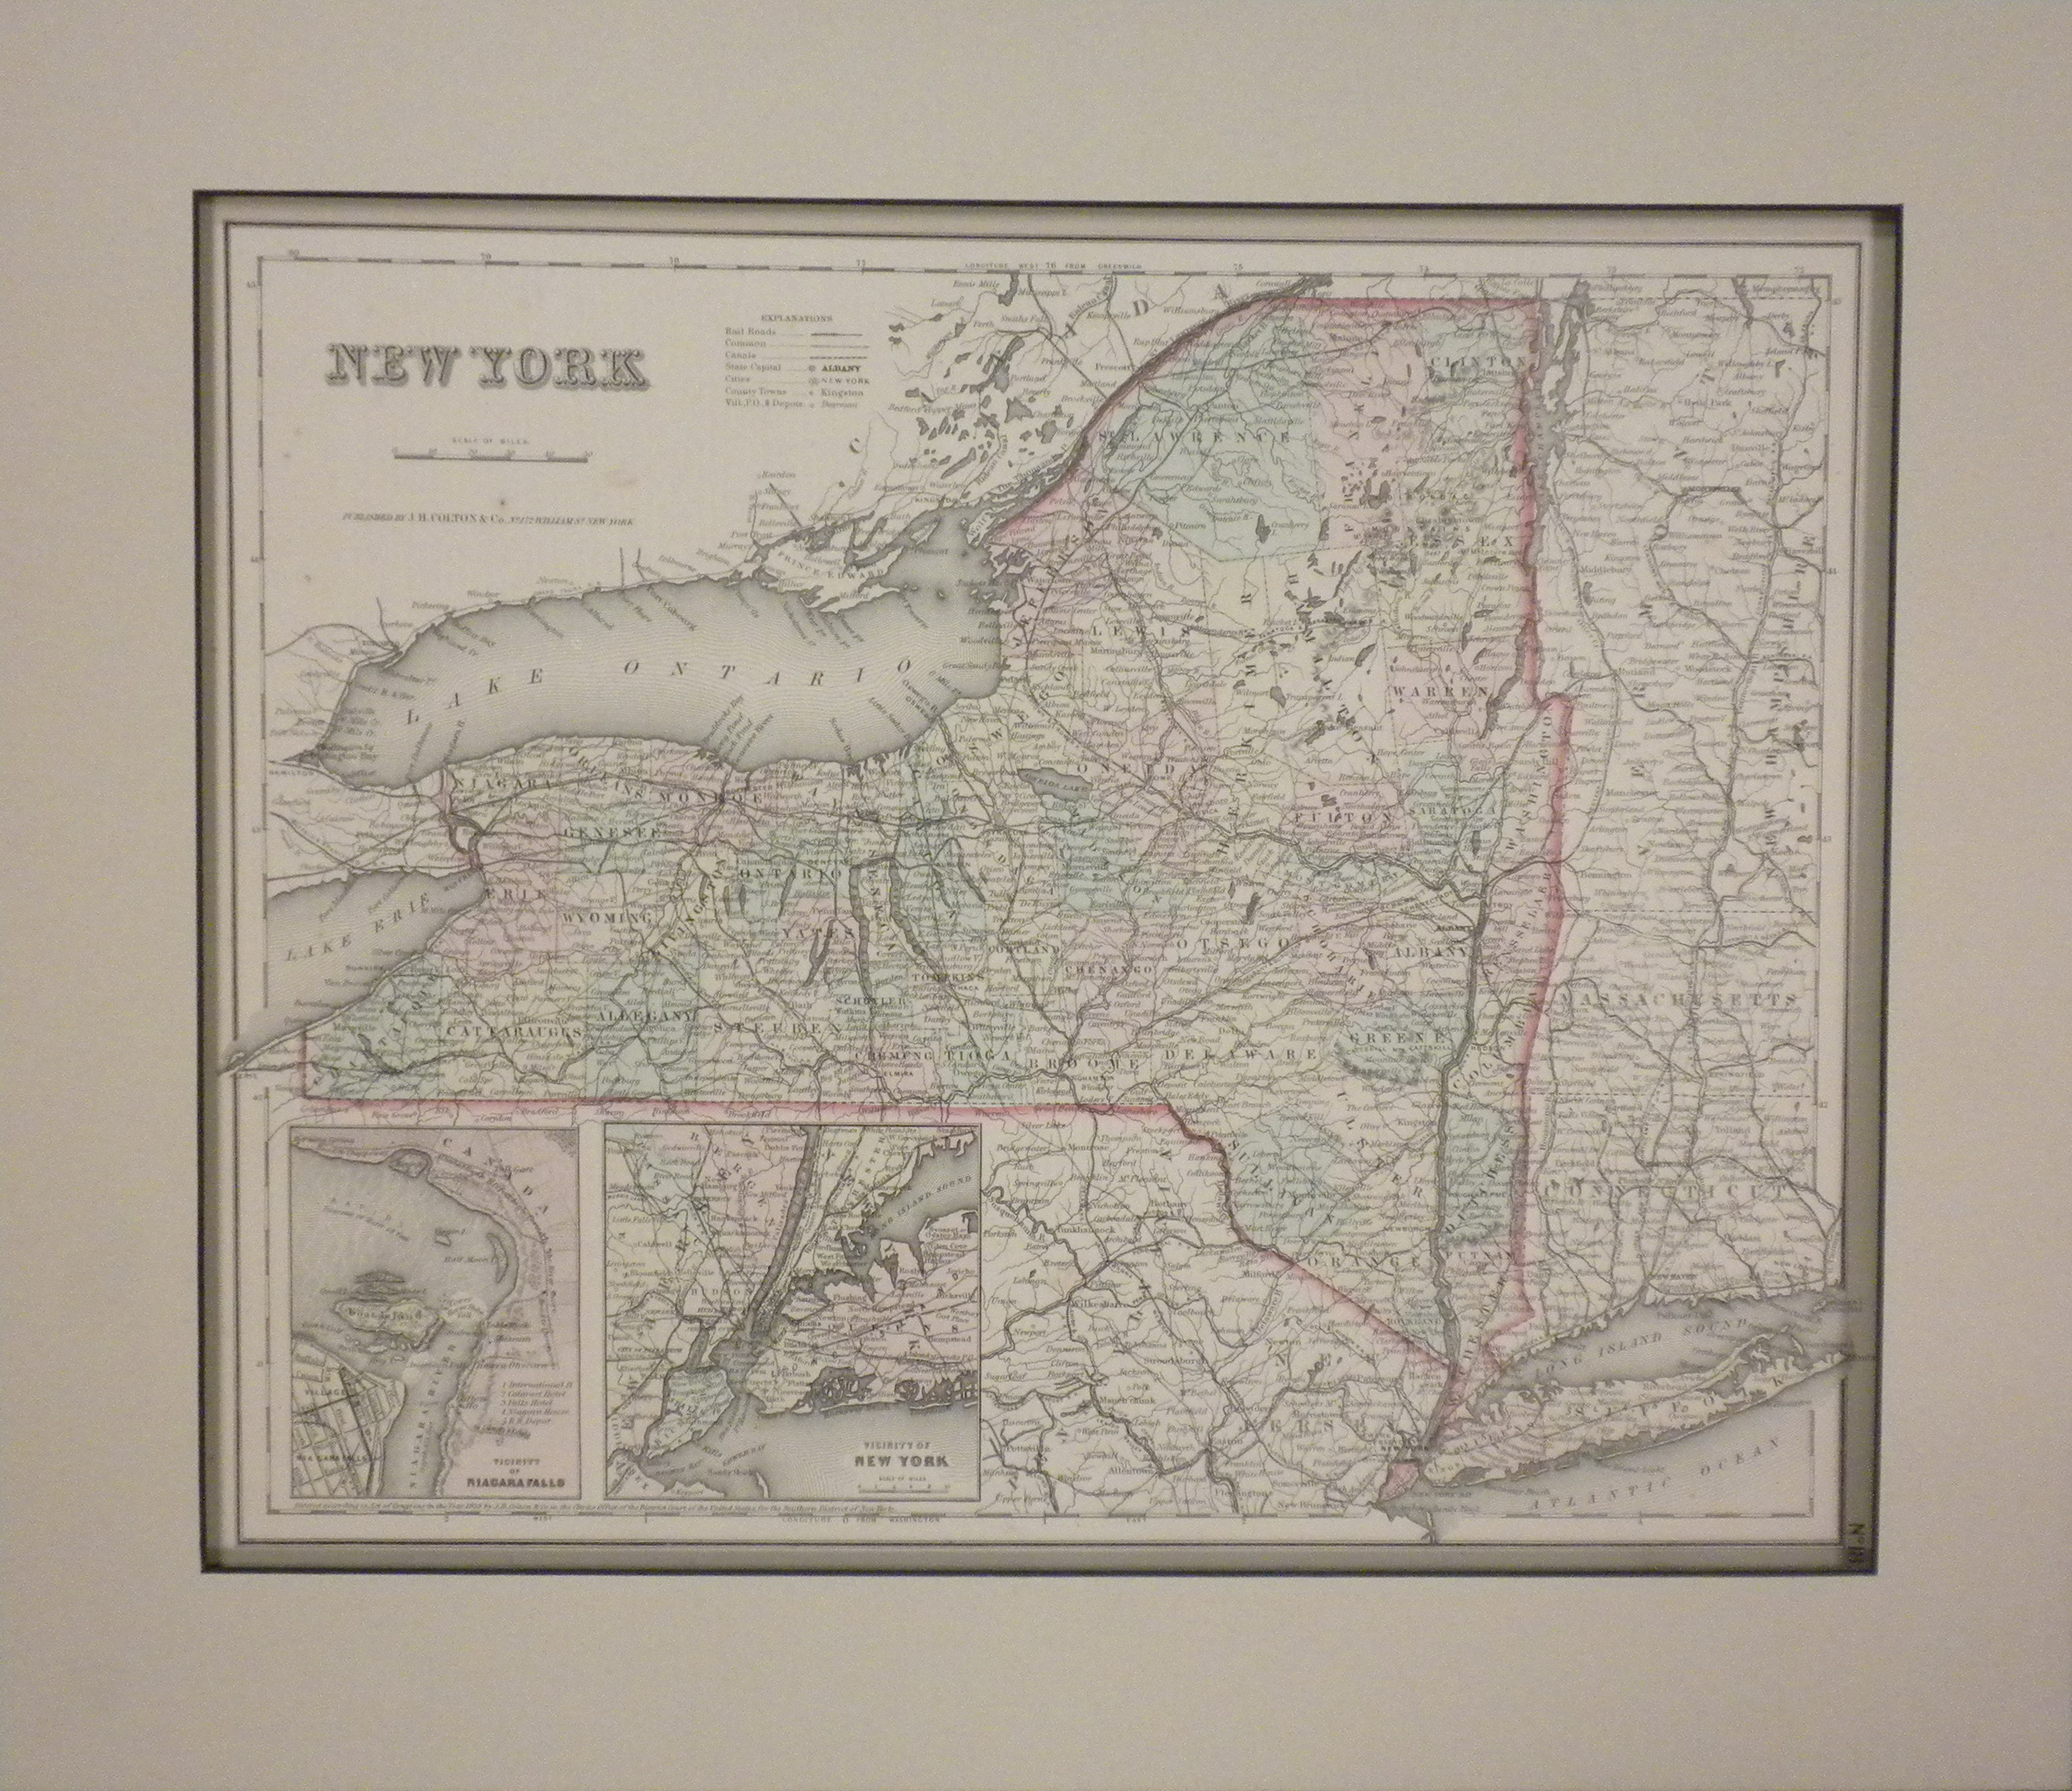 1855 Map of New York, New York Vicinity and Niagara Falls by J.H. Colton